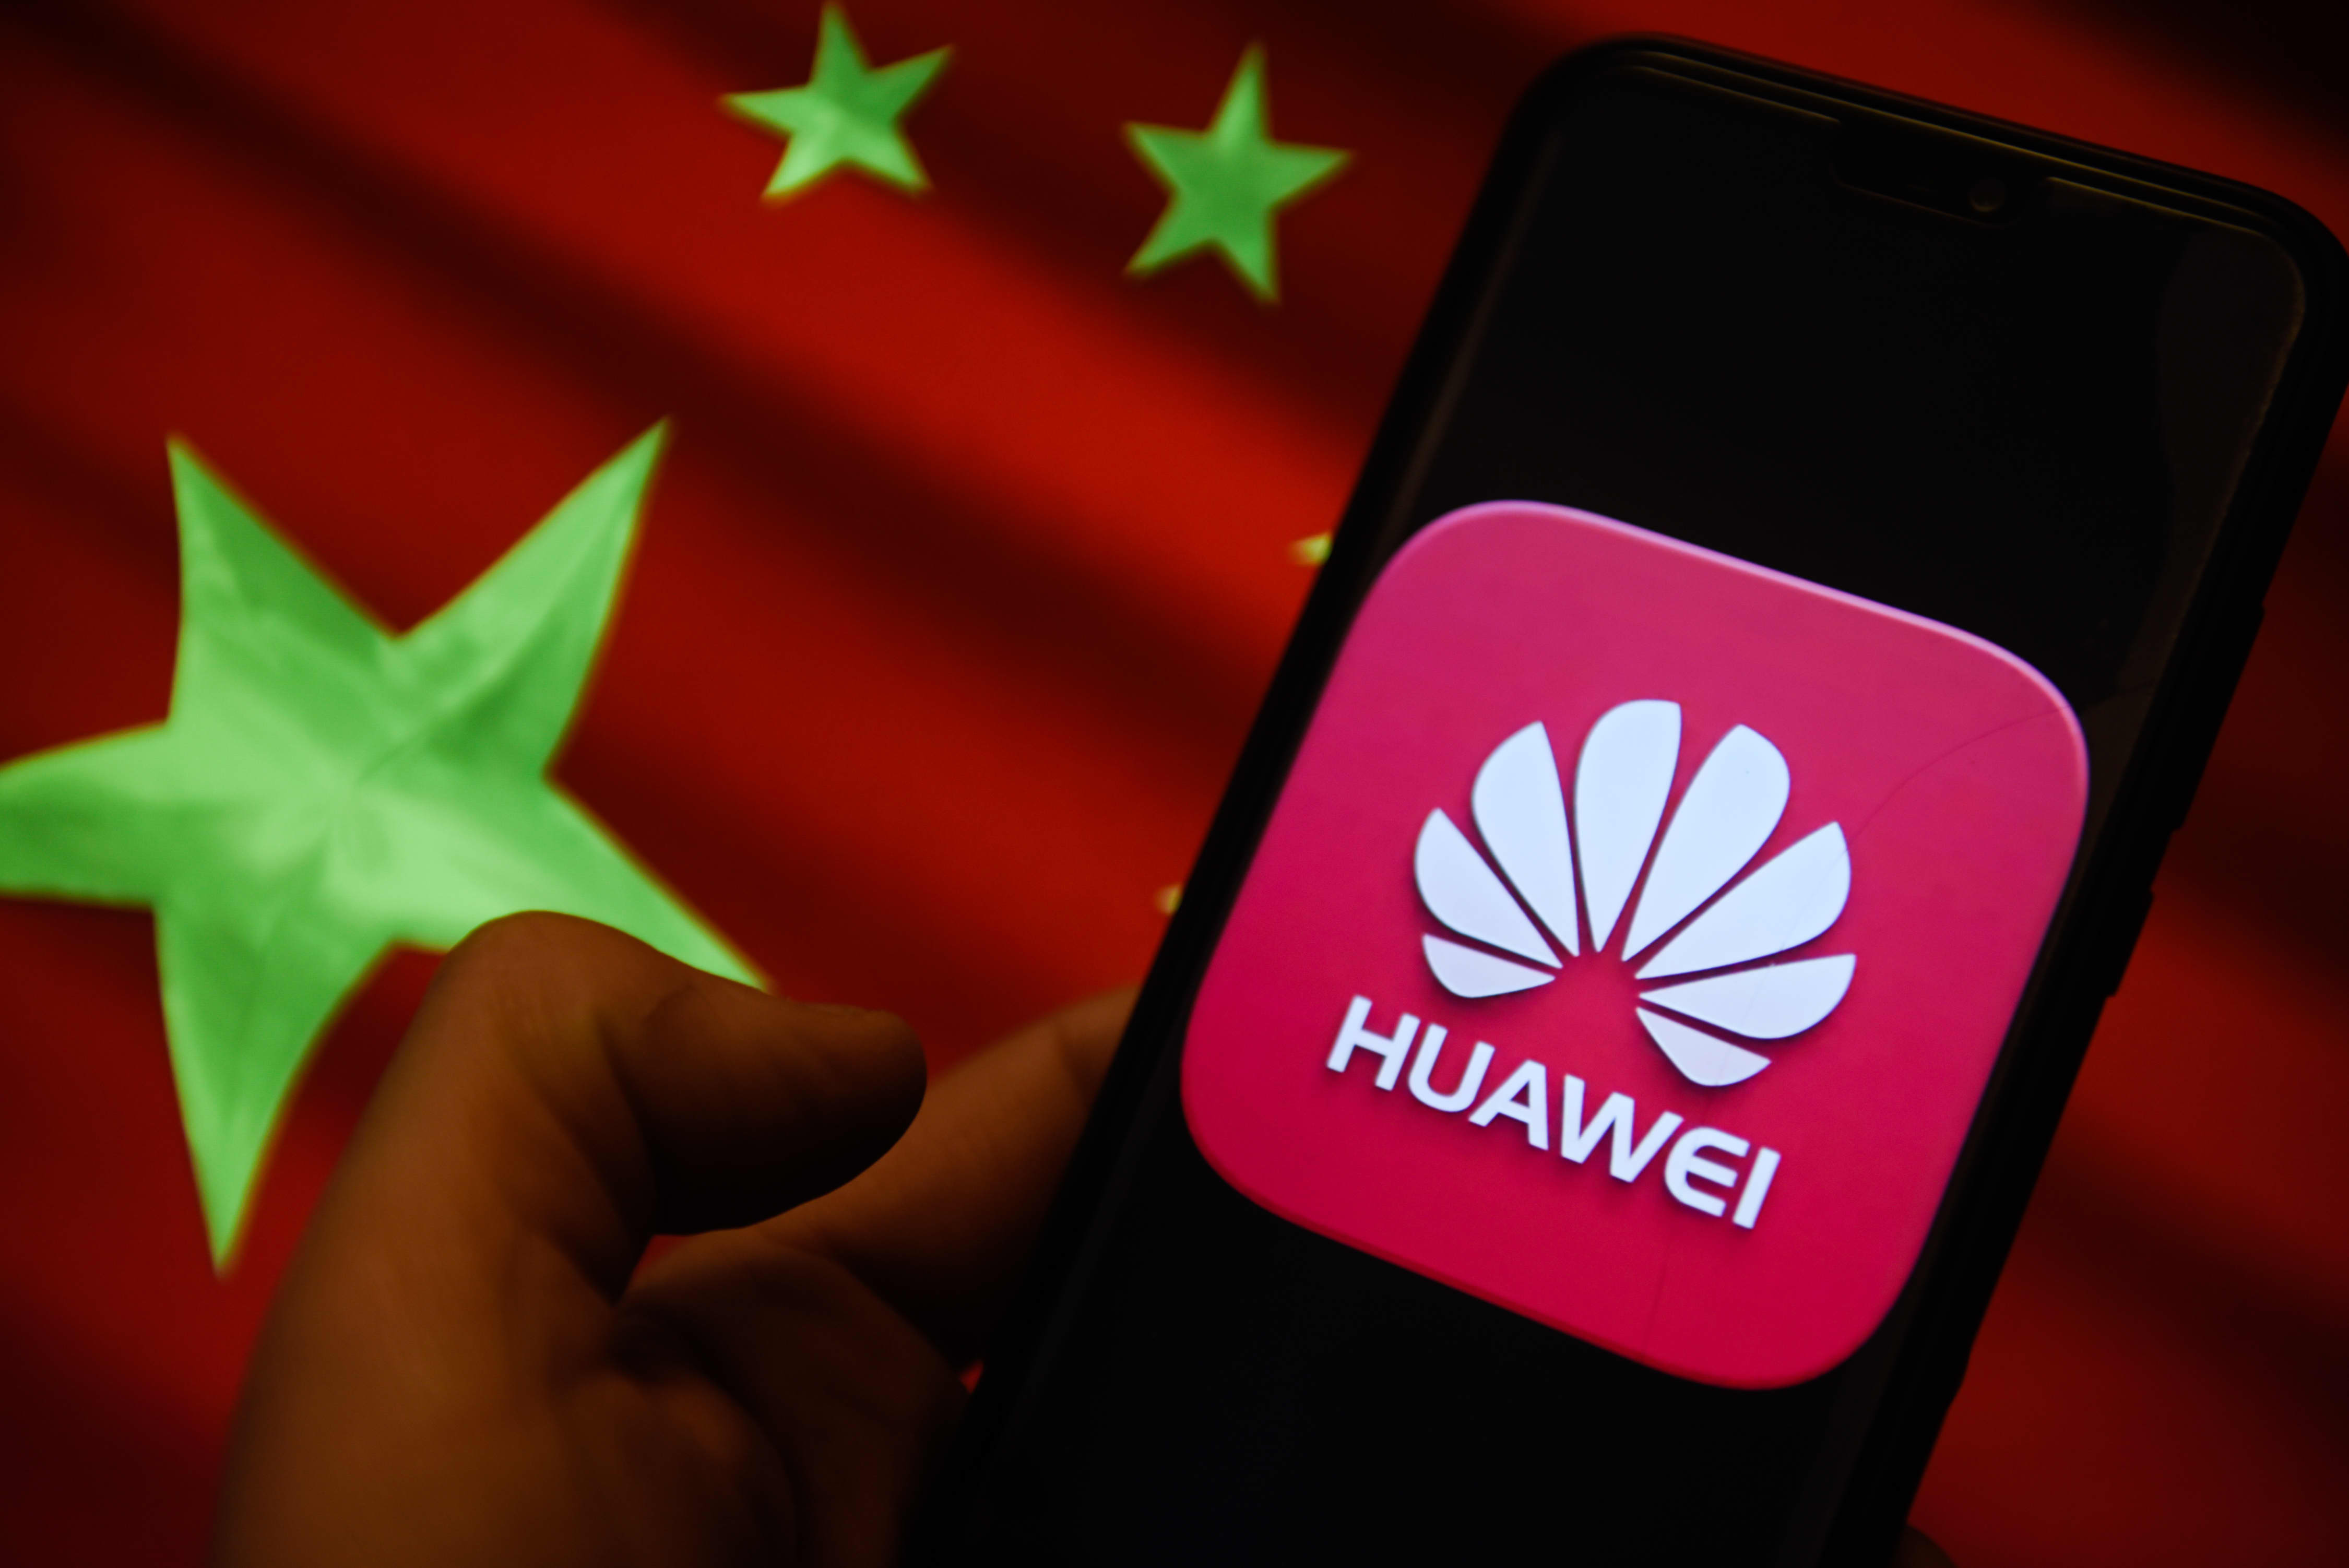 India reportedly weighs 5G ban on Huawei amid tensions with China 76